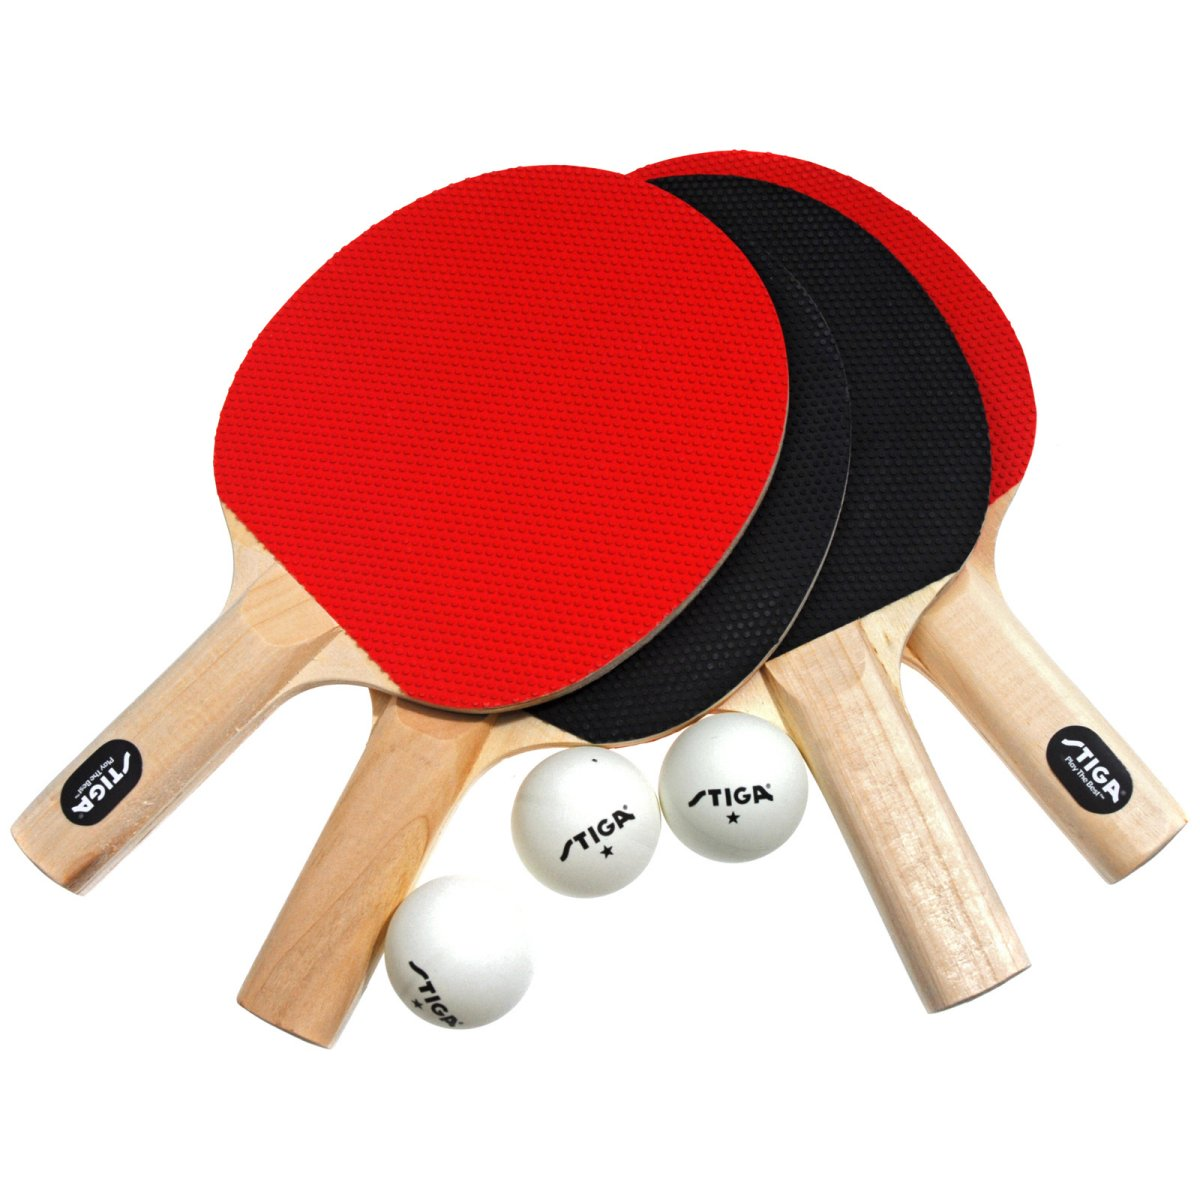 Stiga Classic 4-Player Table Tennis Racket Set